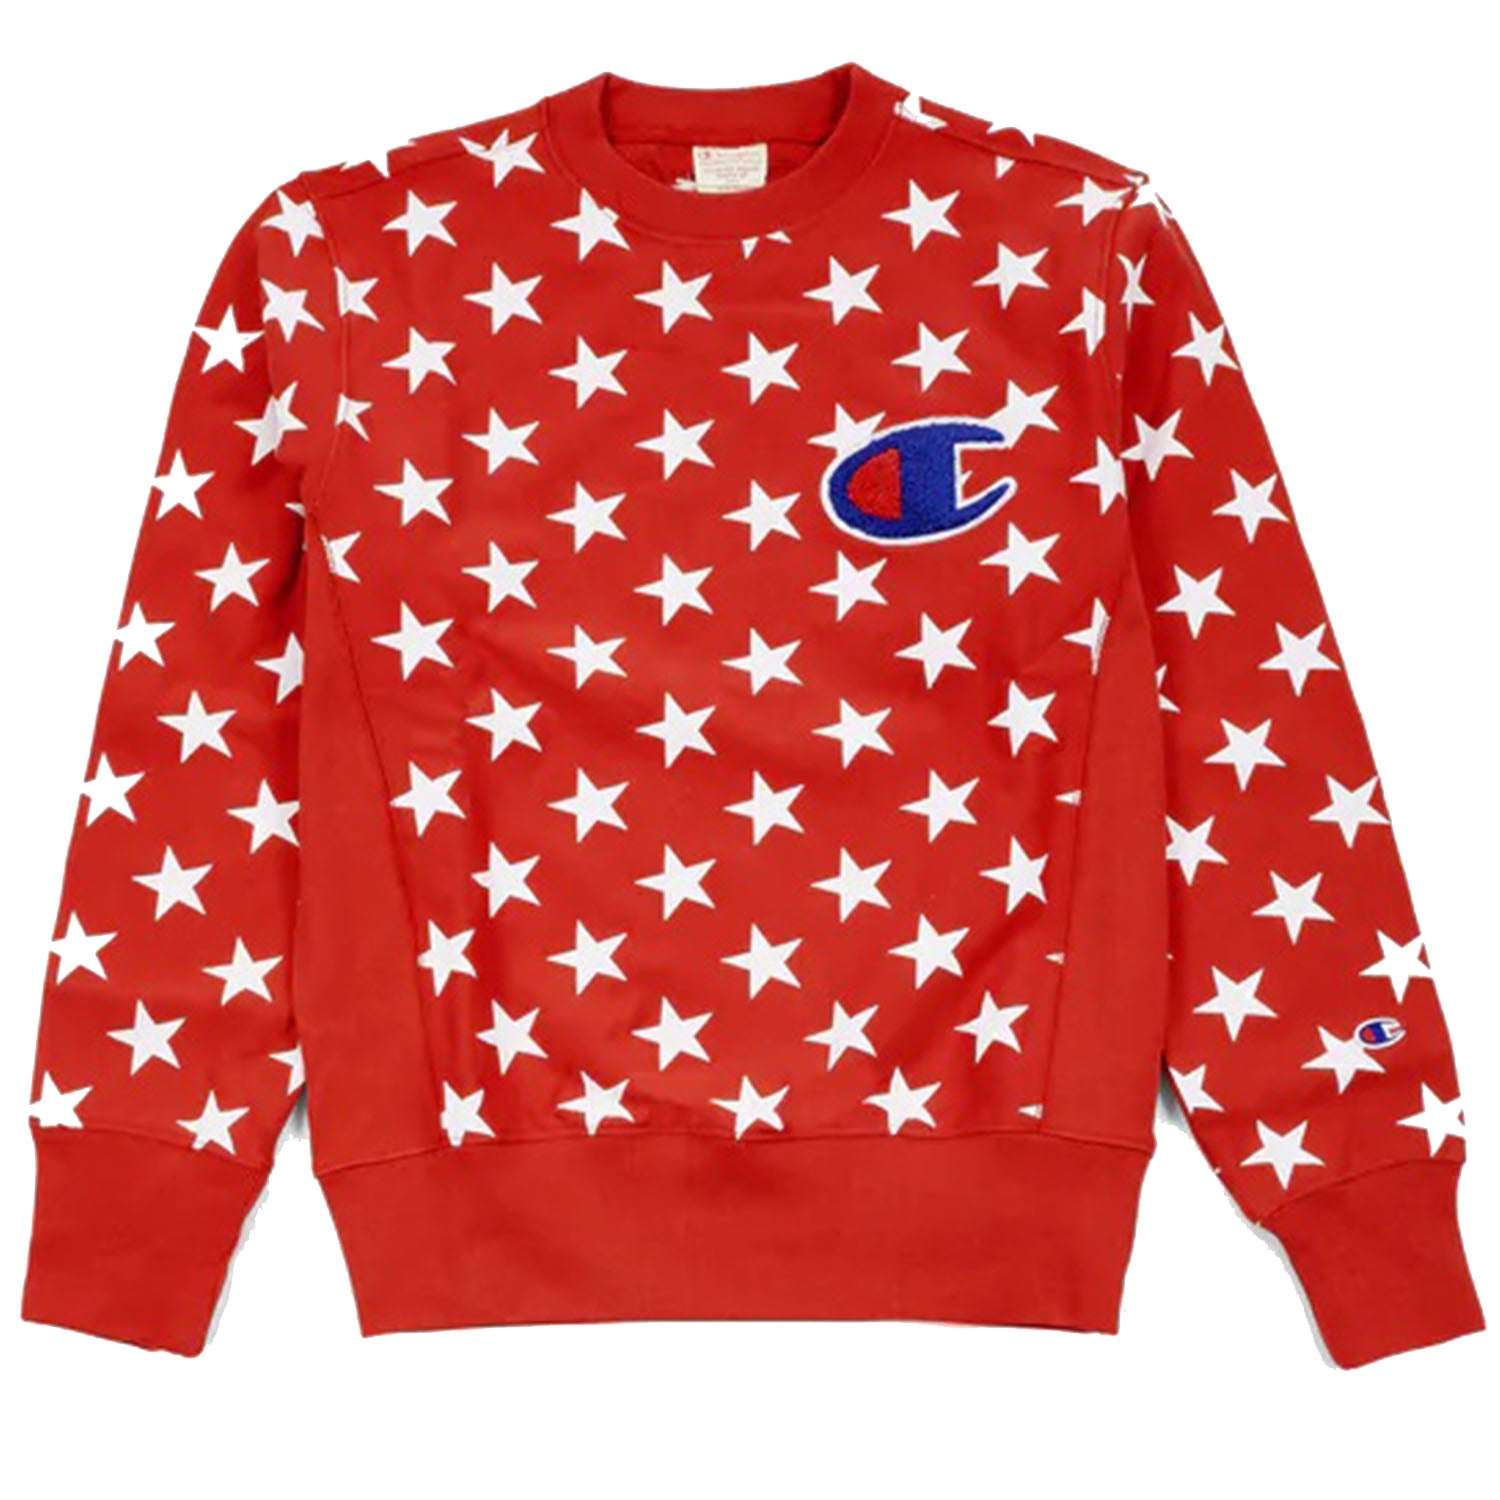 Champion All Over Star Print Red Sweatshirt